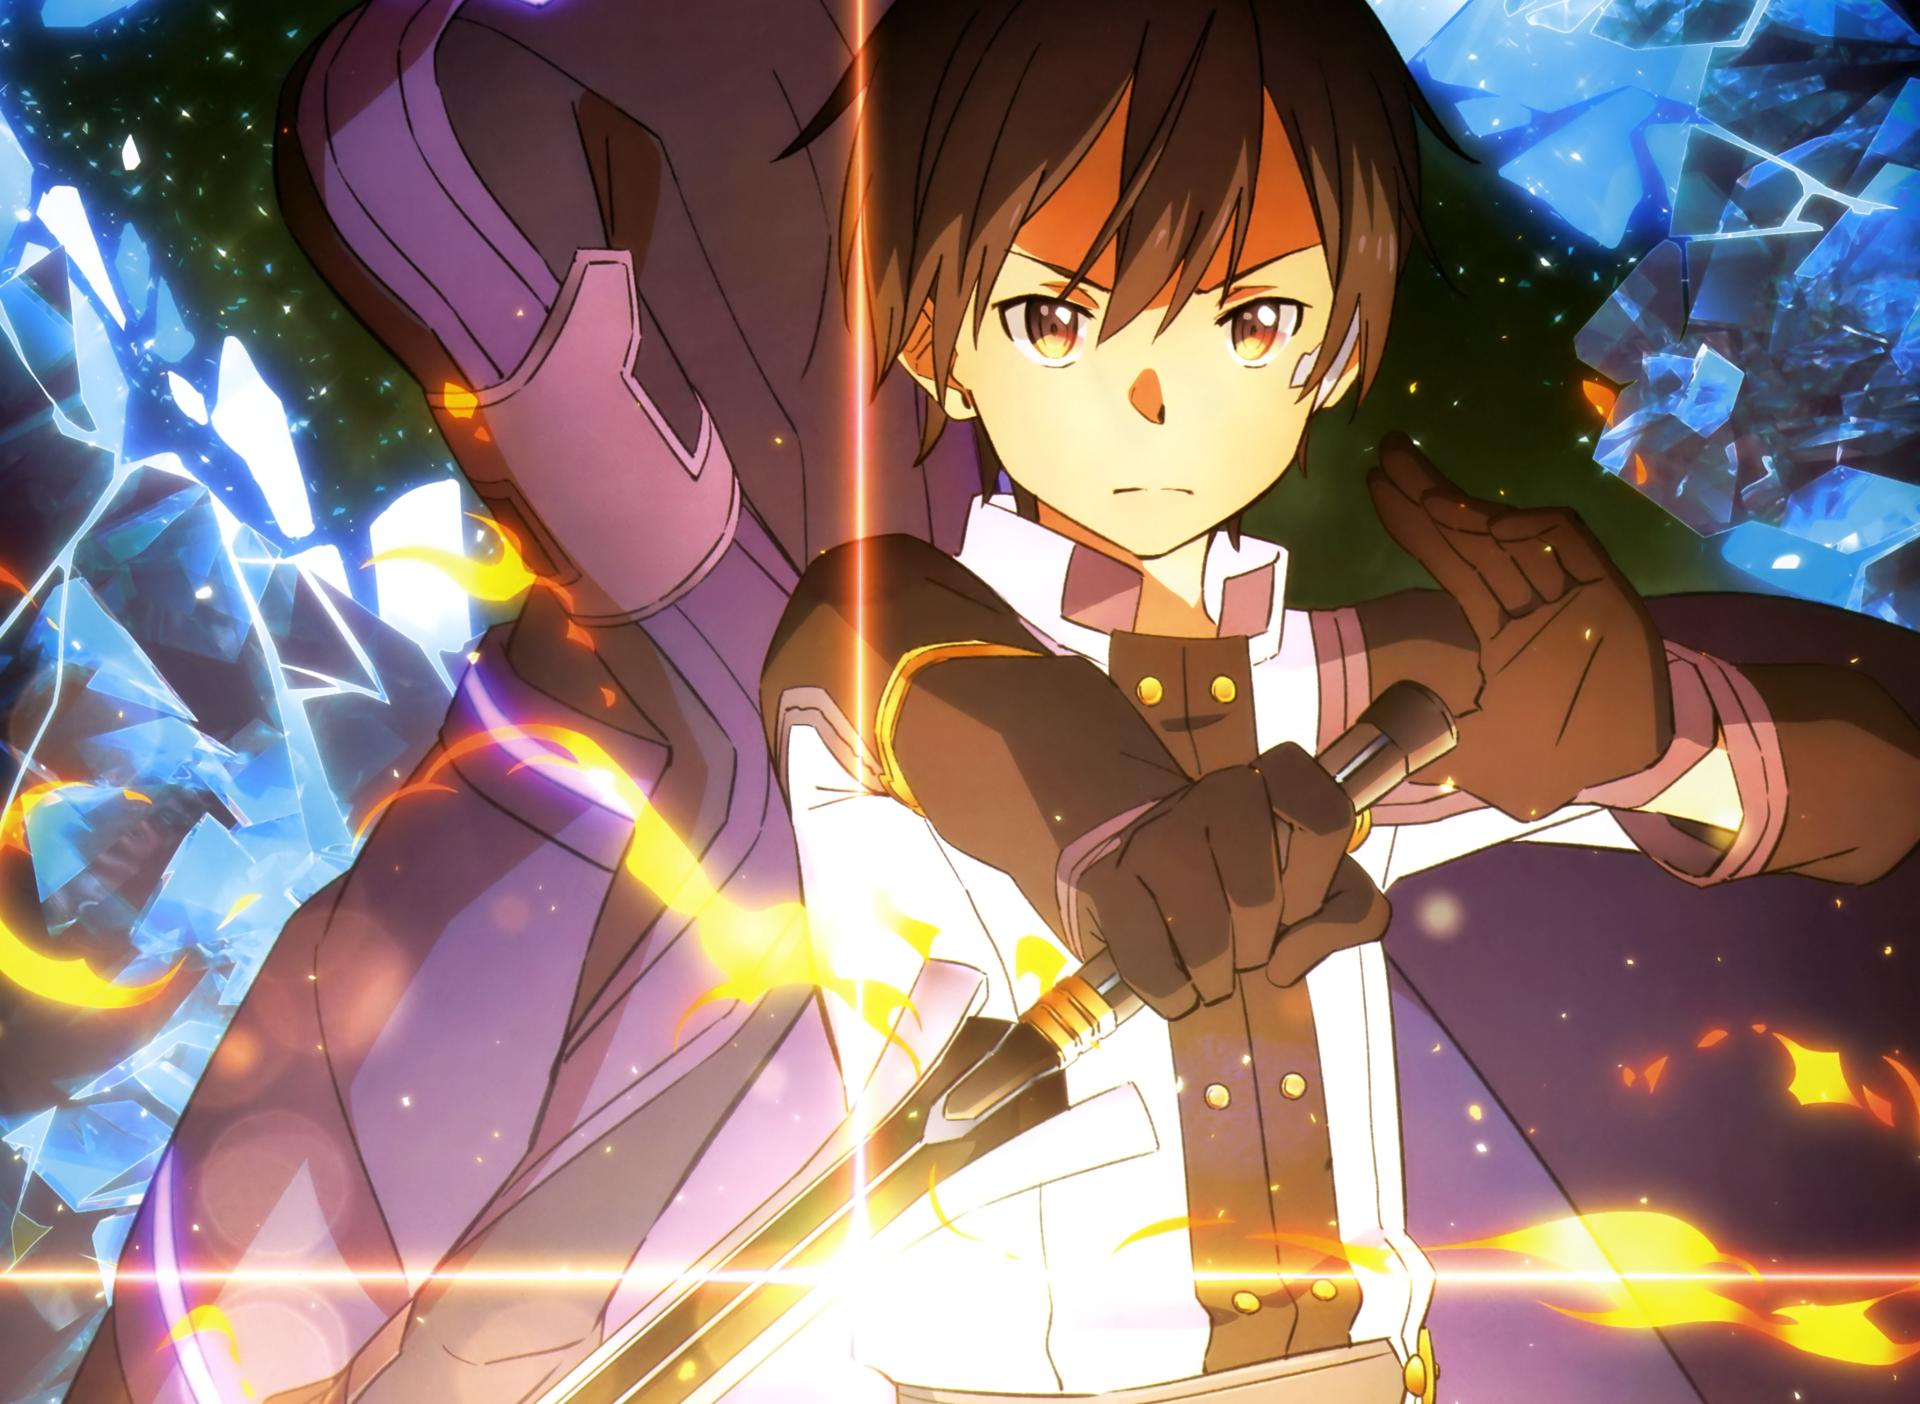 sword art online movie - photo #15